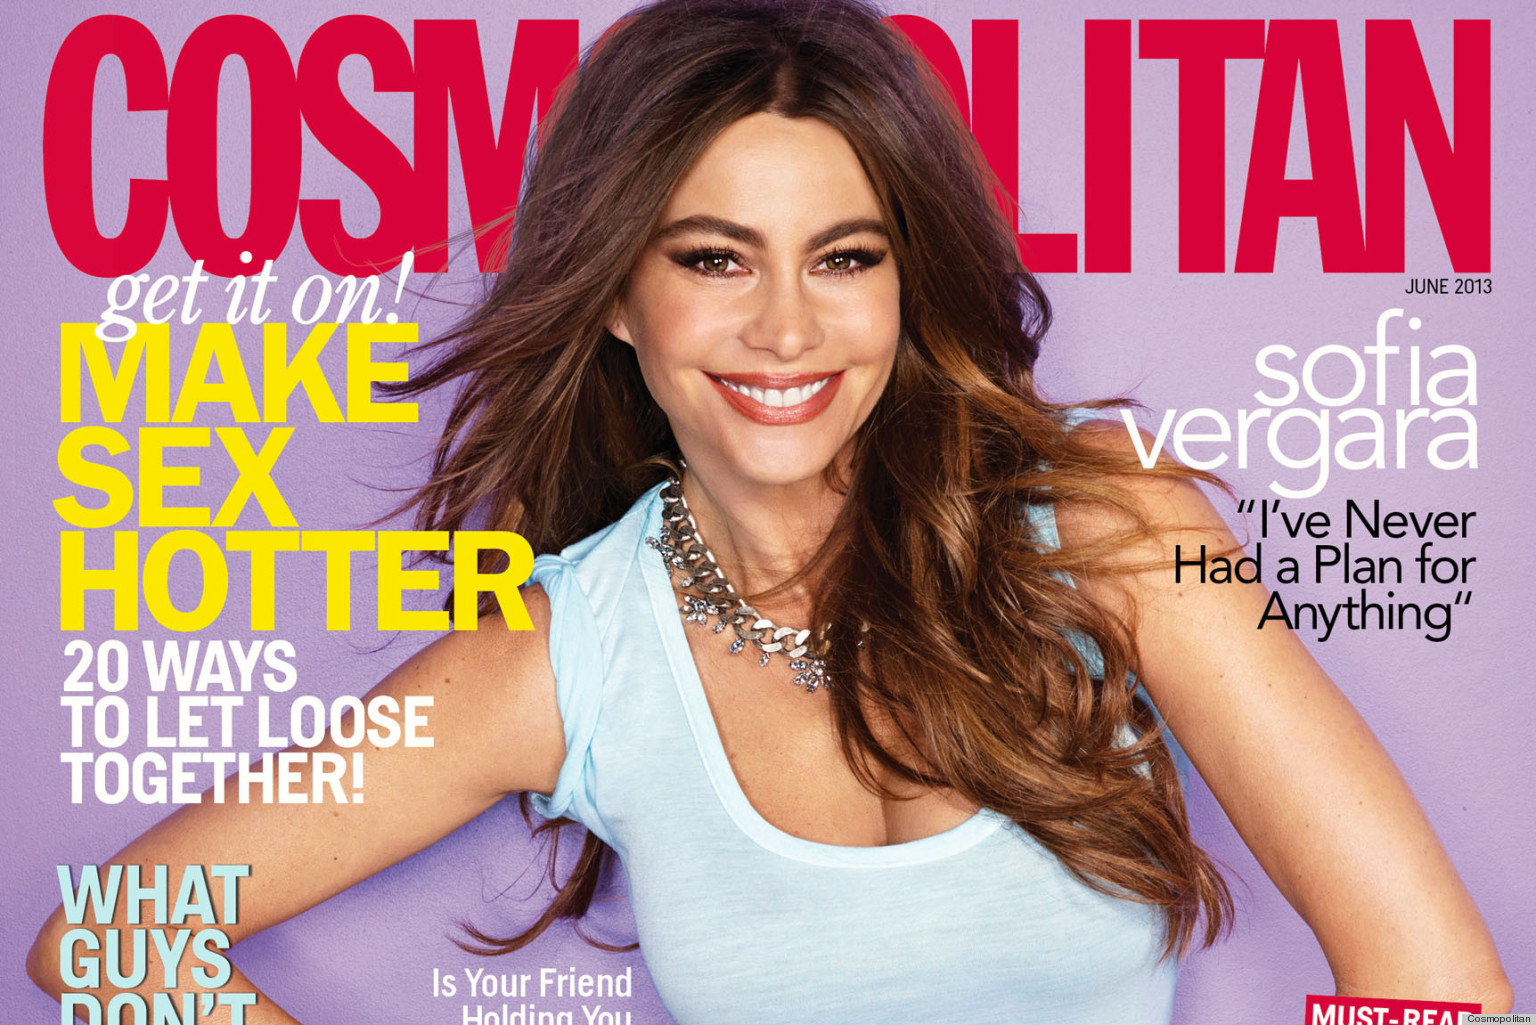 PHOTOS: Why Sofia Vergara's Boobs Land Her On Worst-Dressed Lists